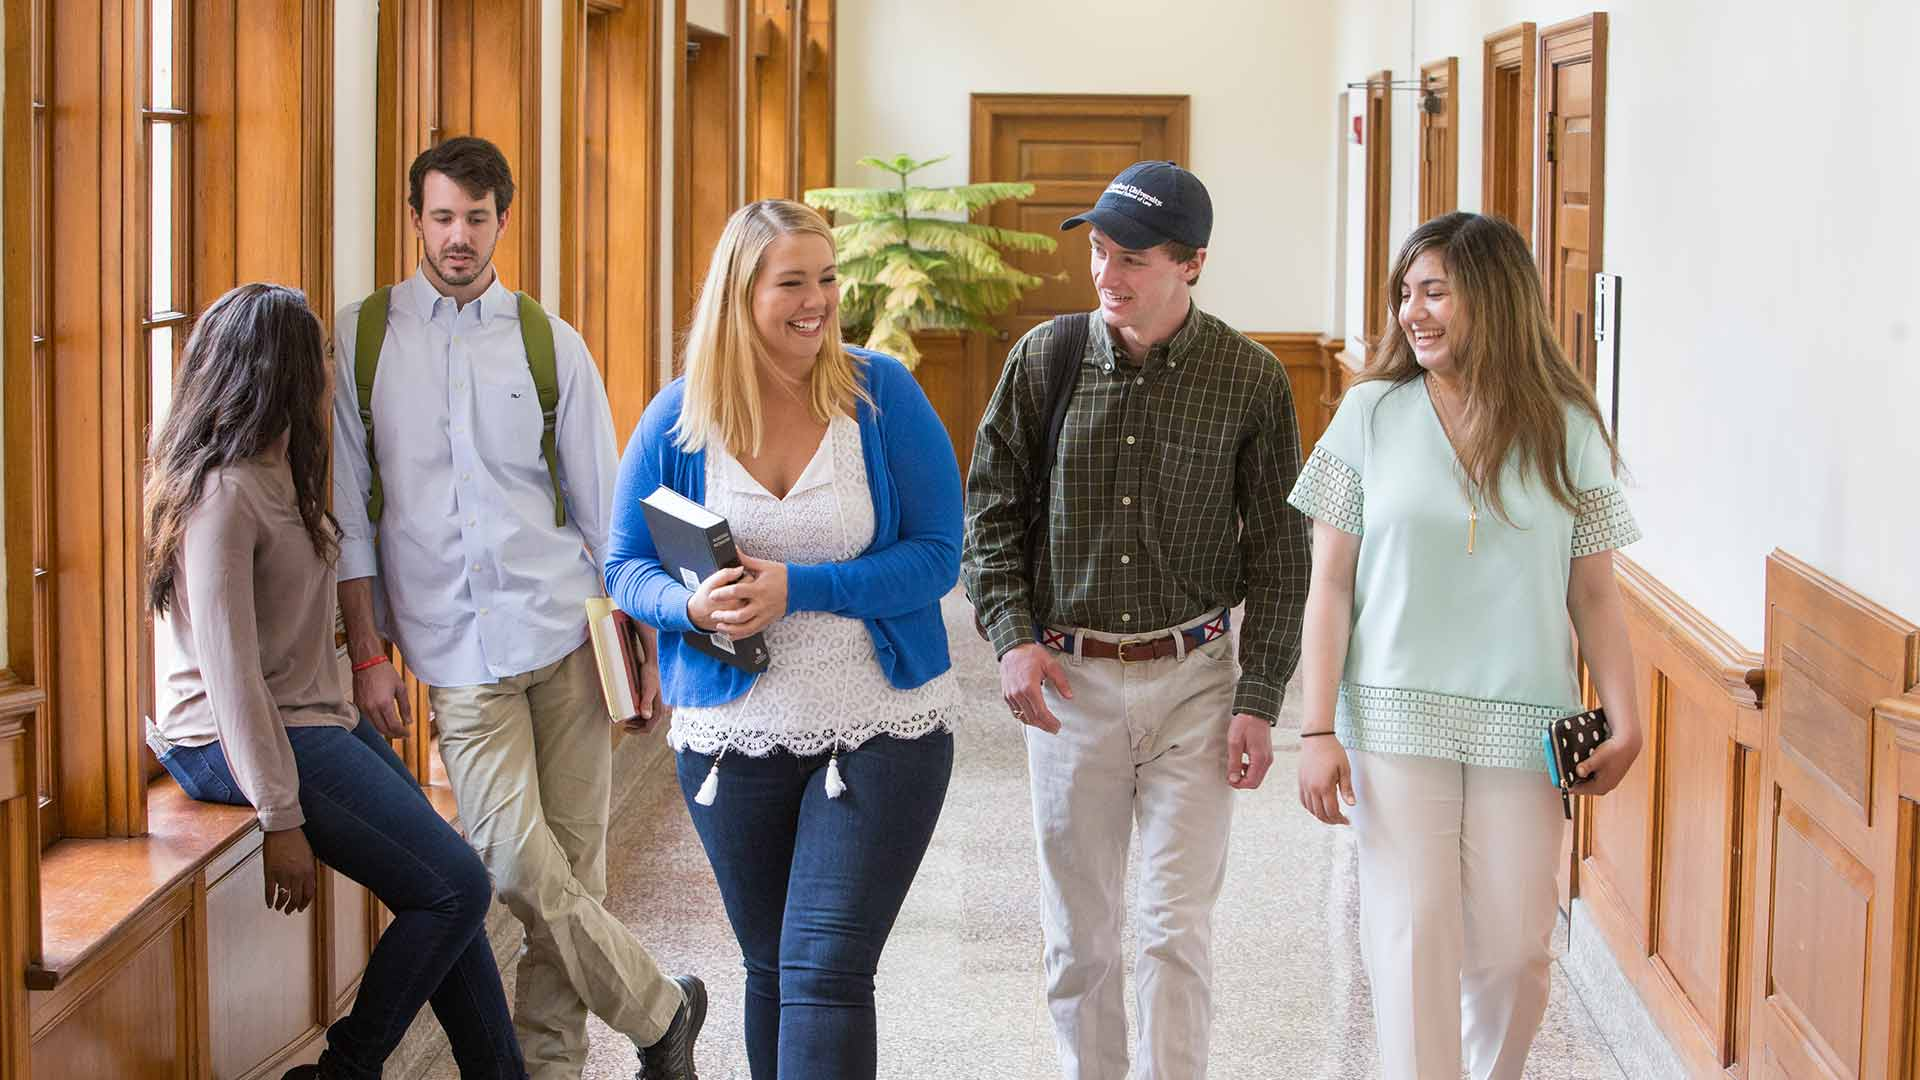 female and male students walking in the hall